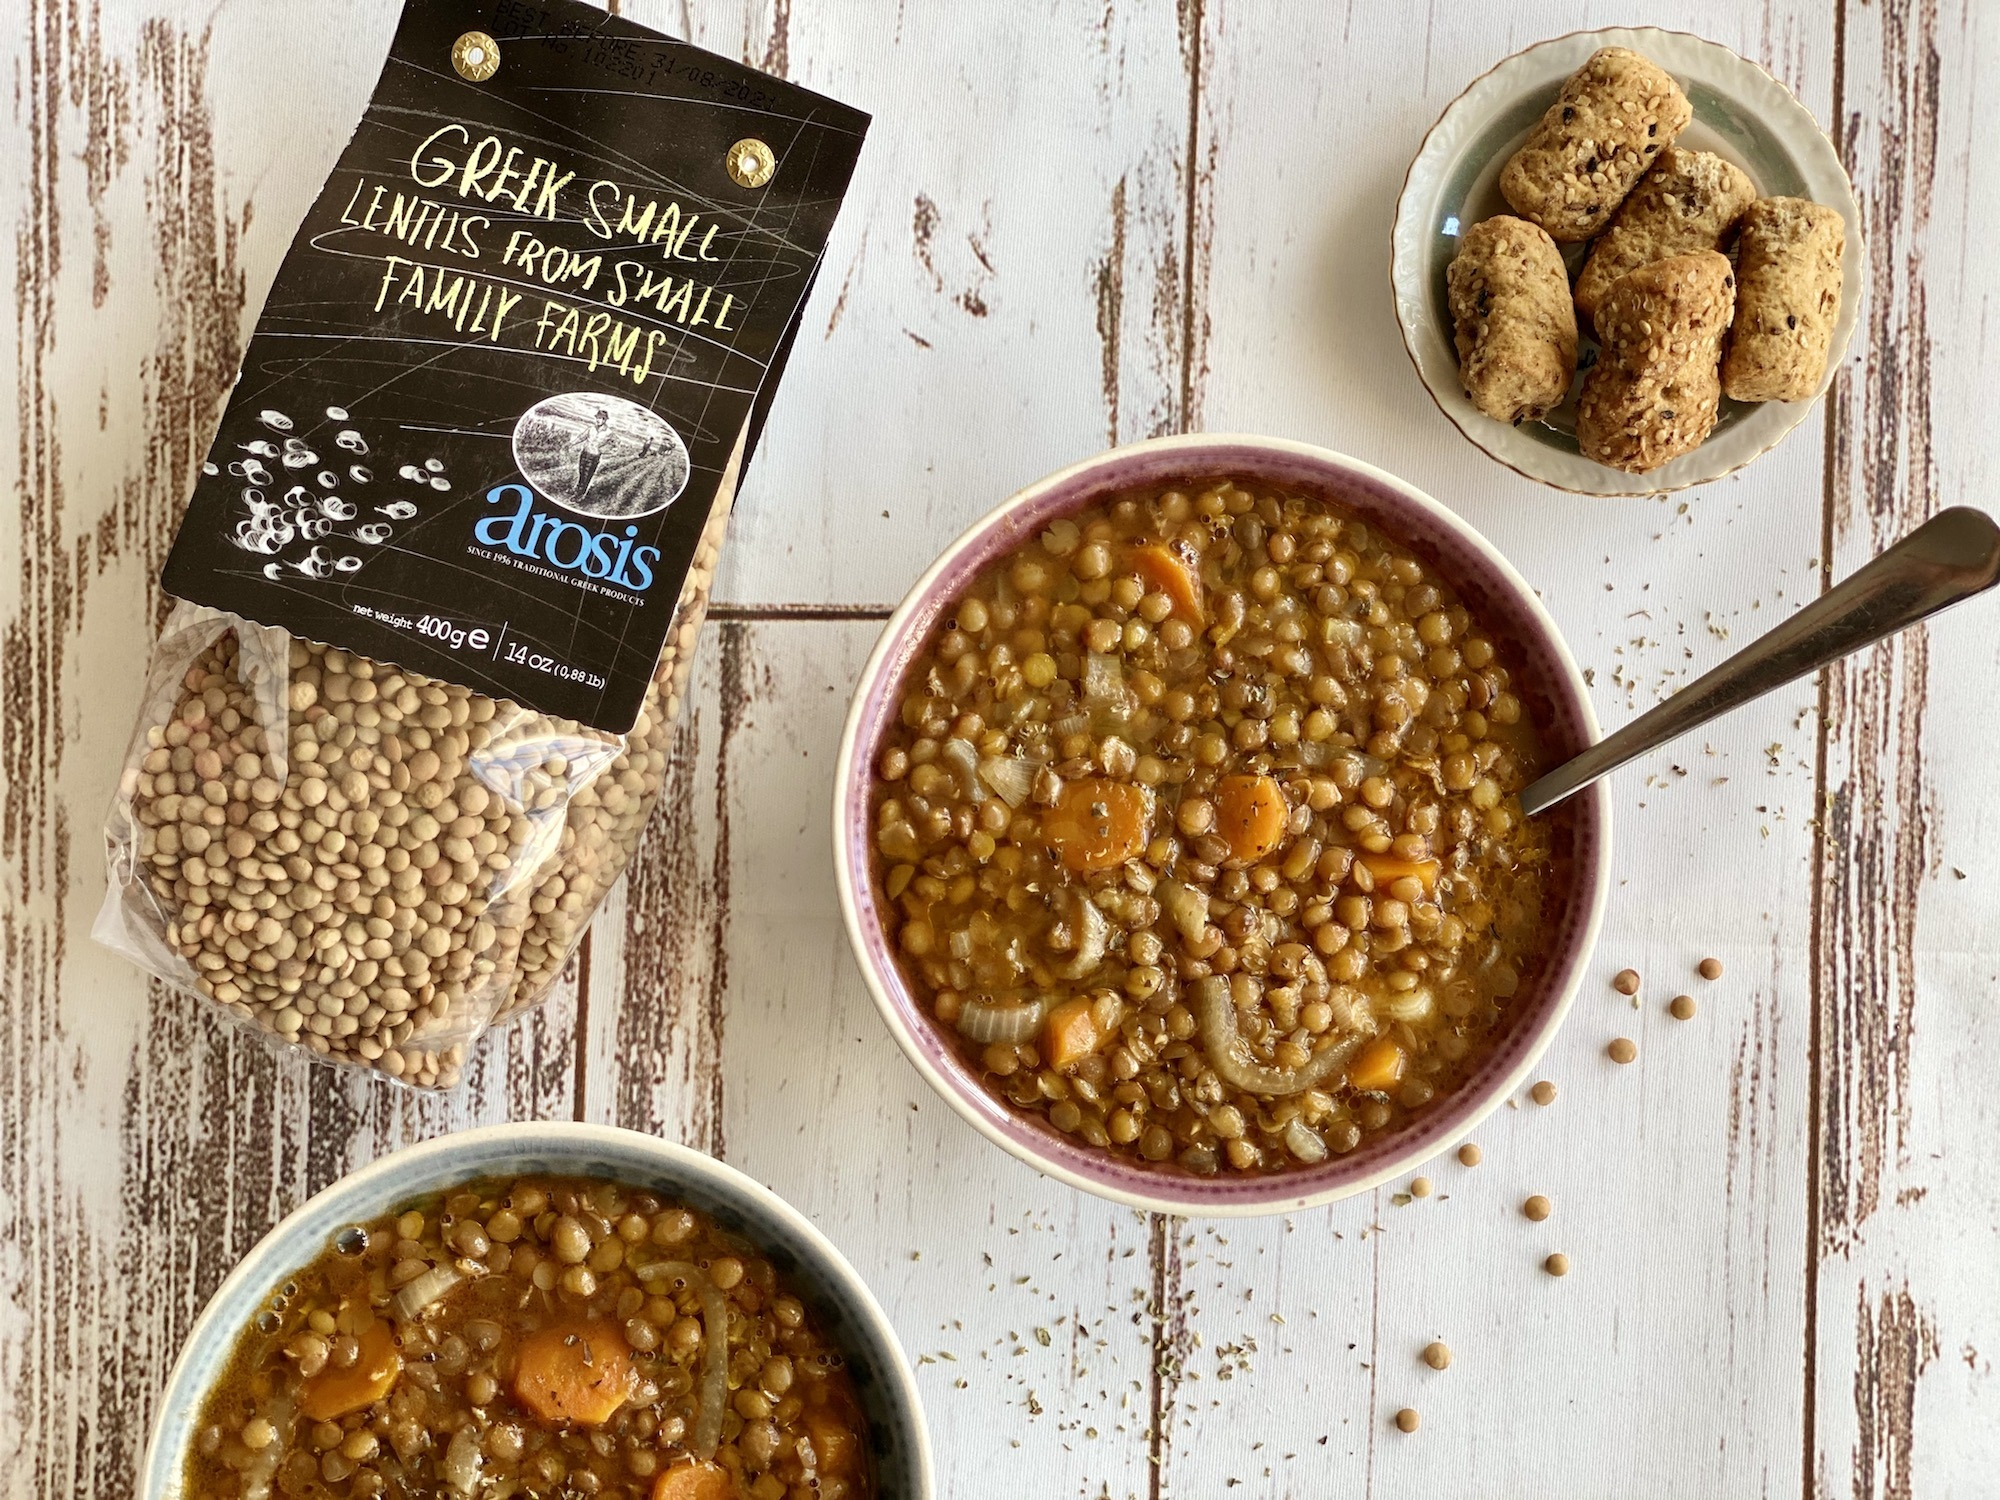 GREEK LENTIL SOUP 'FAKES'